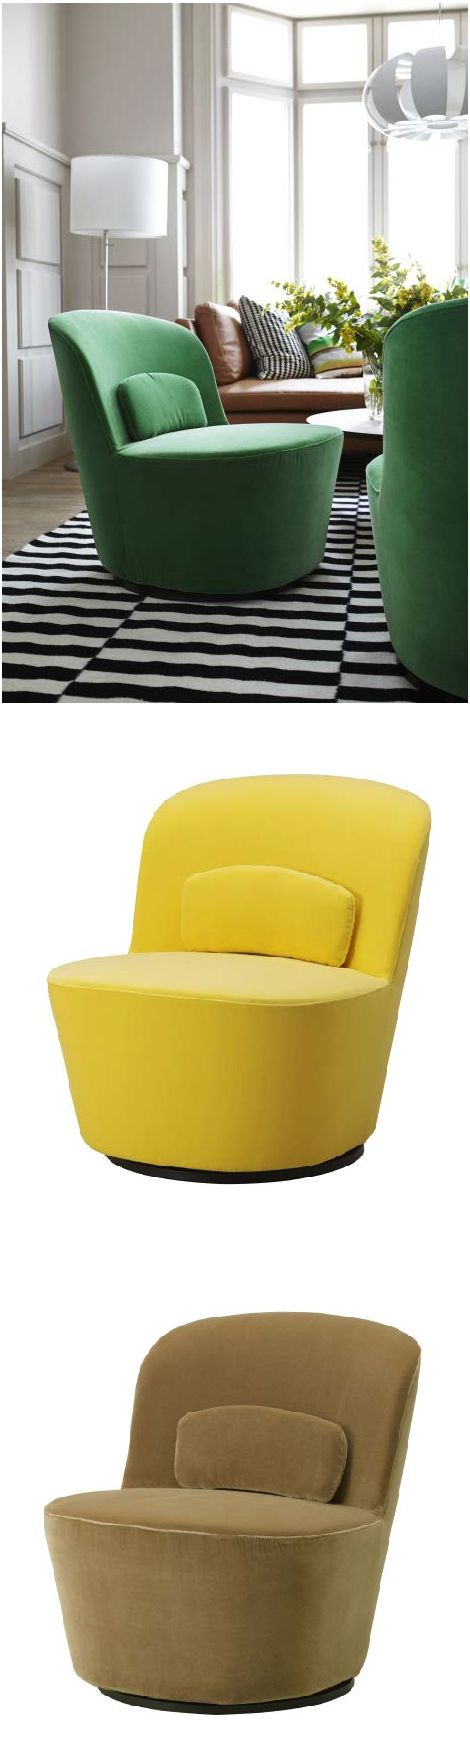 Stockholm Swivel Chair Sandbacka Green Receptions Armchairs And Stockholm